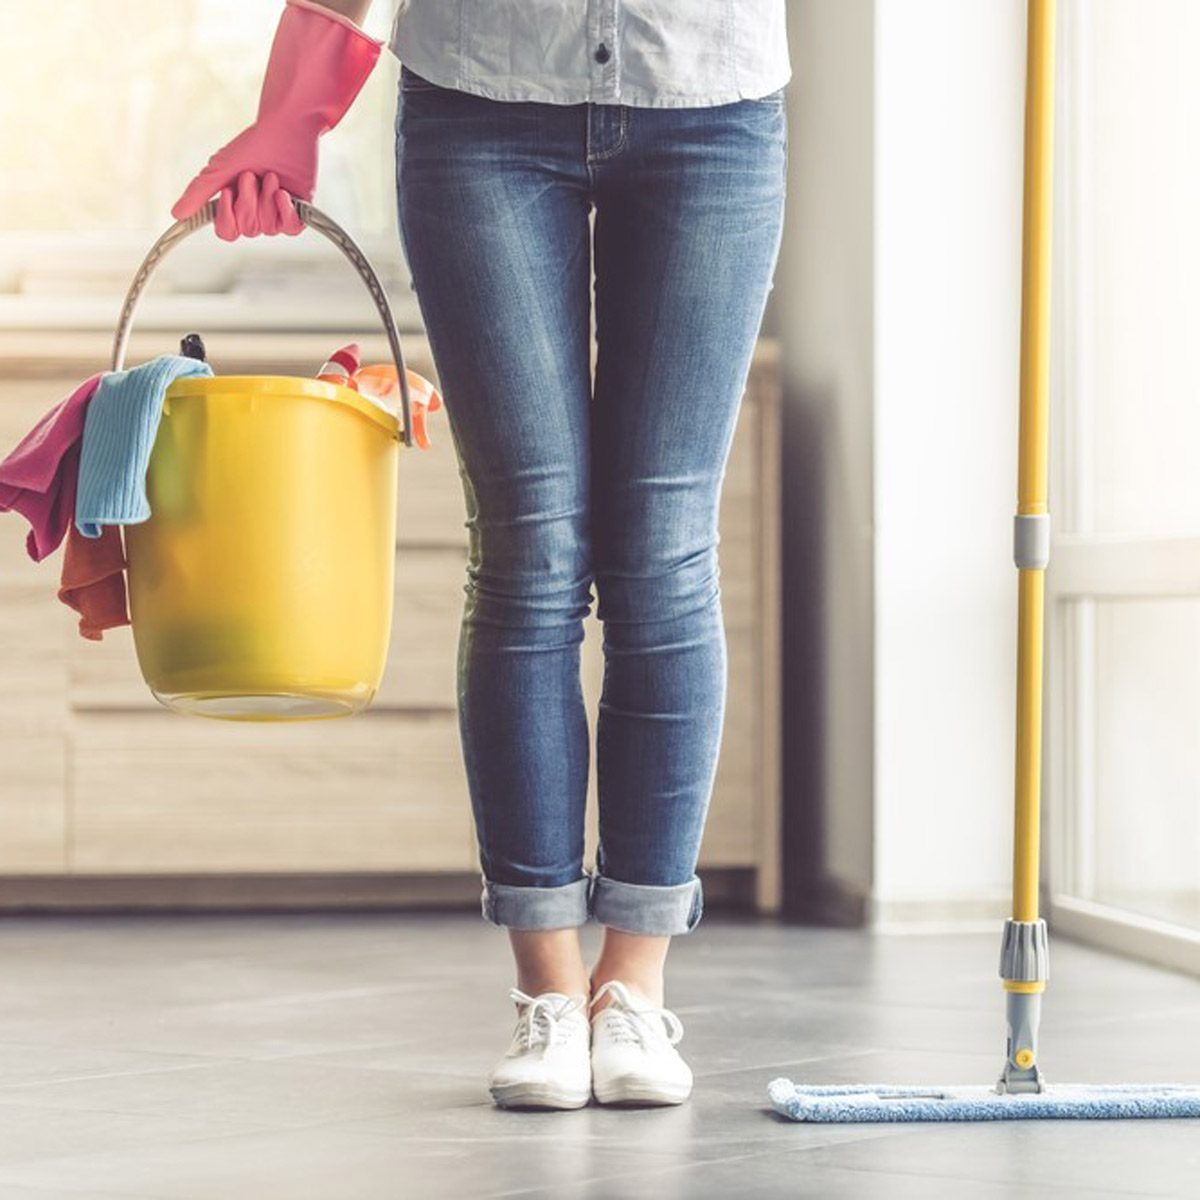 Clean the Carpet, Polish the Floors to Sell Your Home